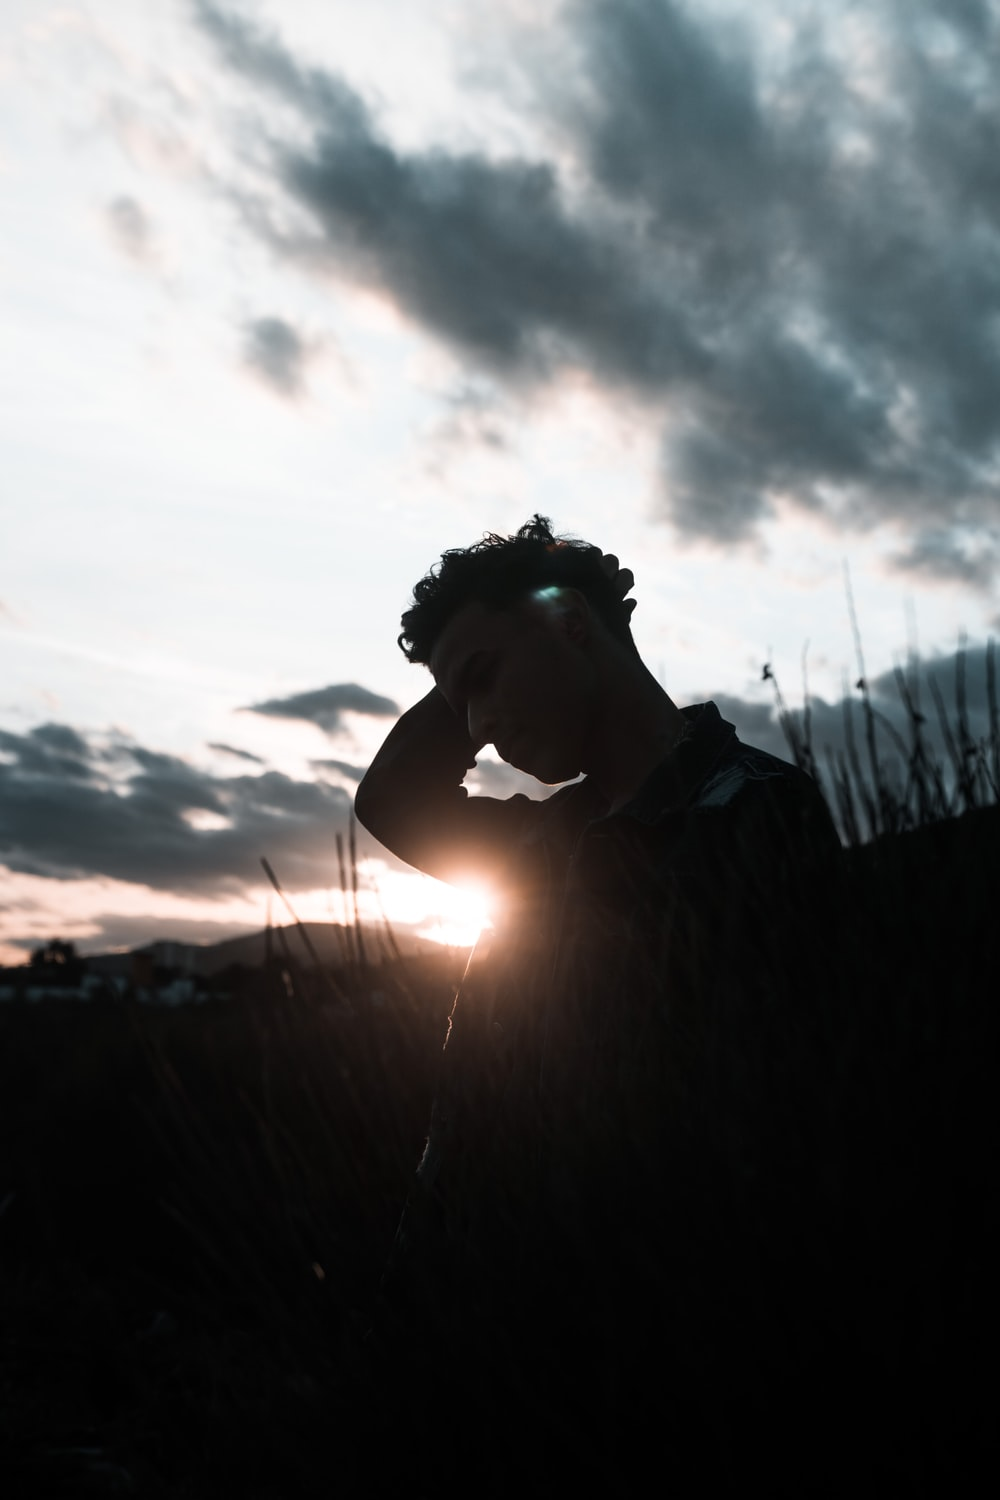 silhouette photography of man standing in grass during dawn